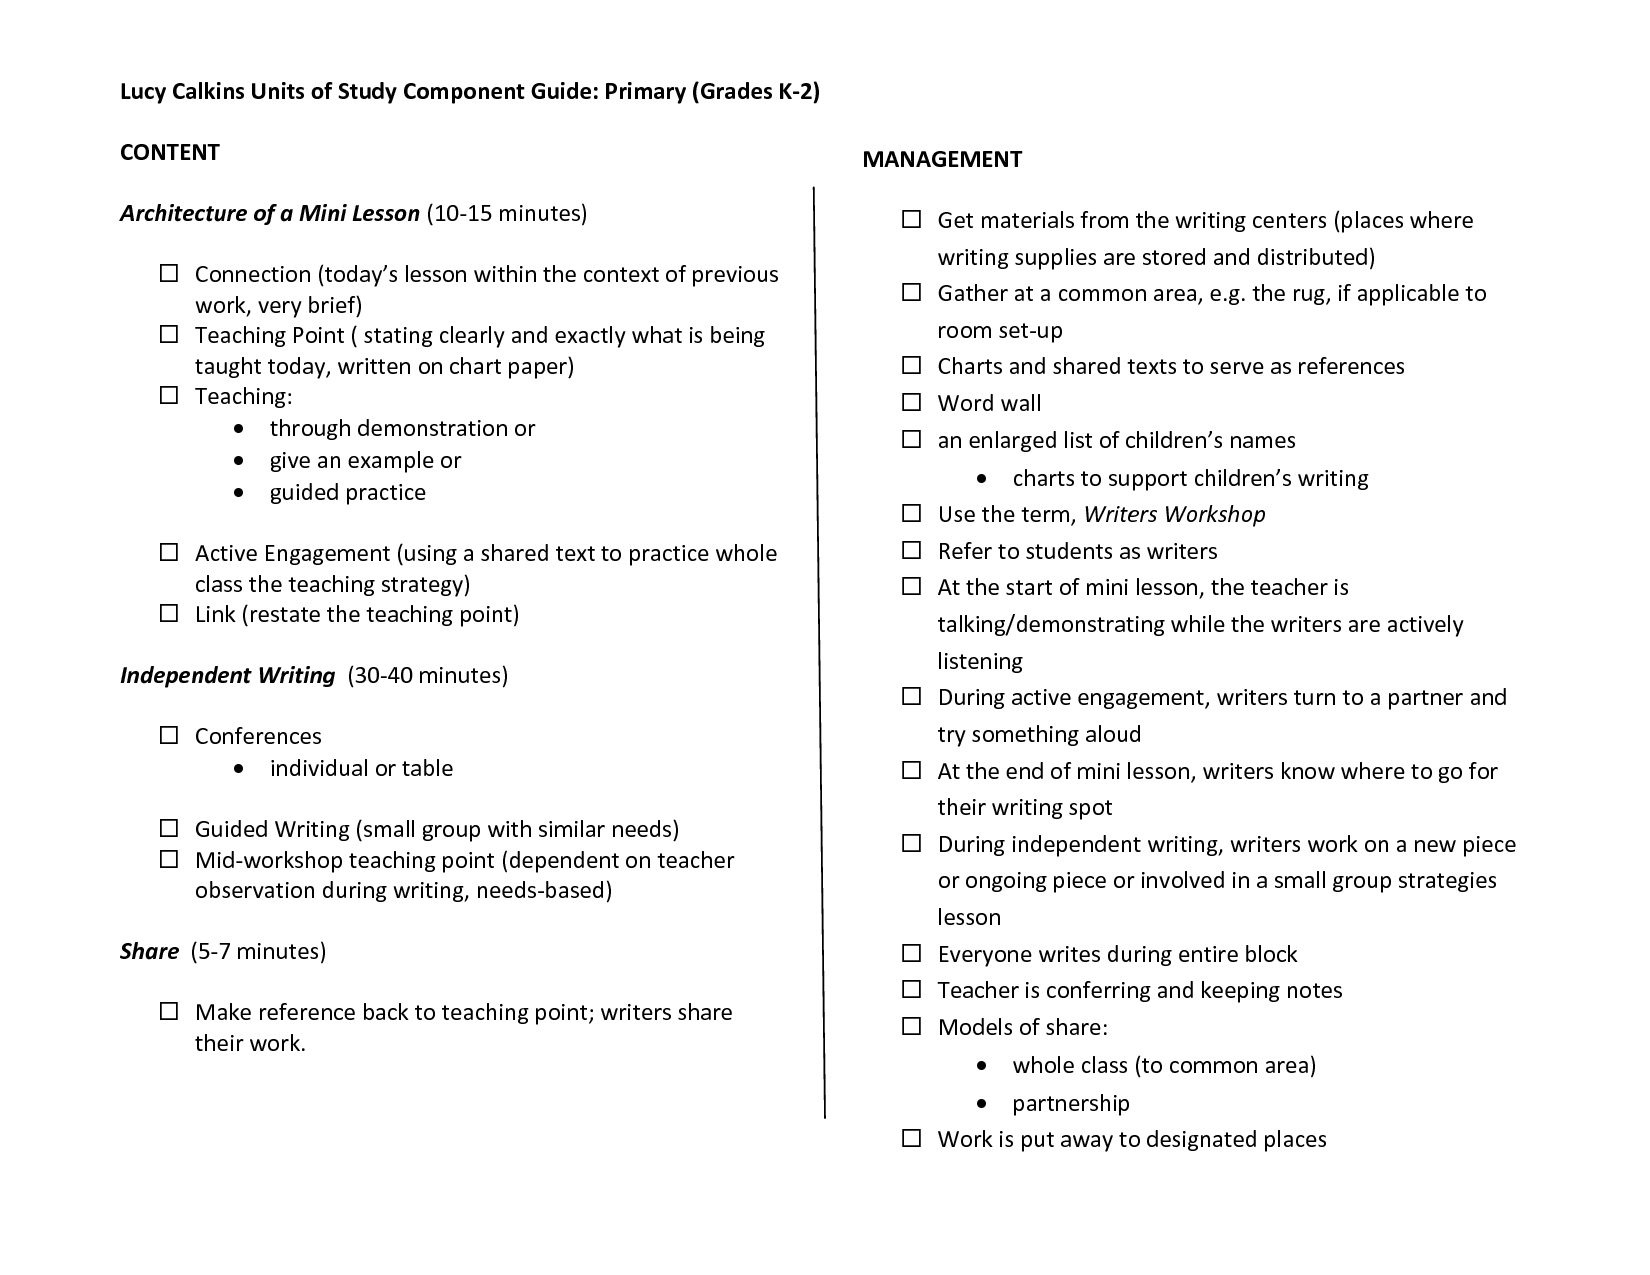 Lucy Calkins Lesson Plan Template